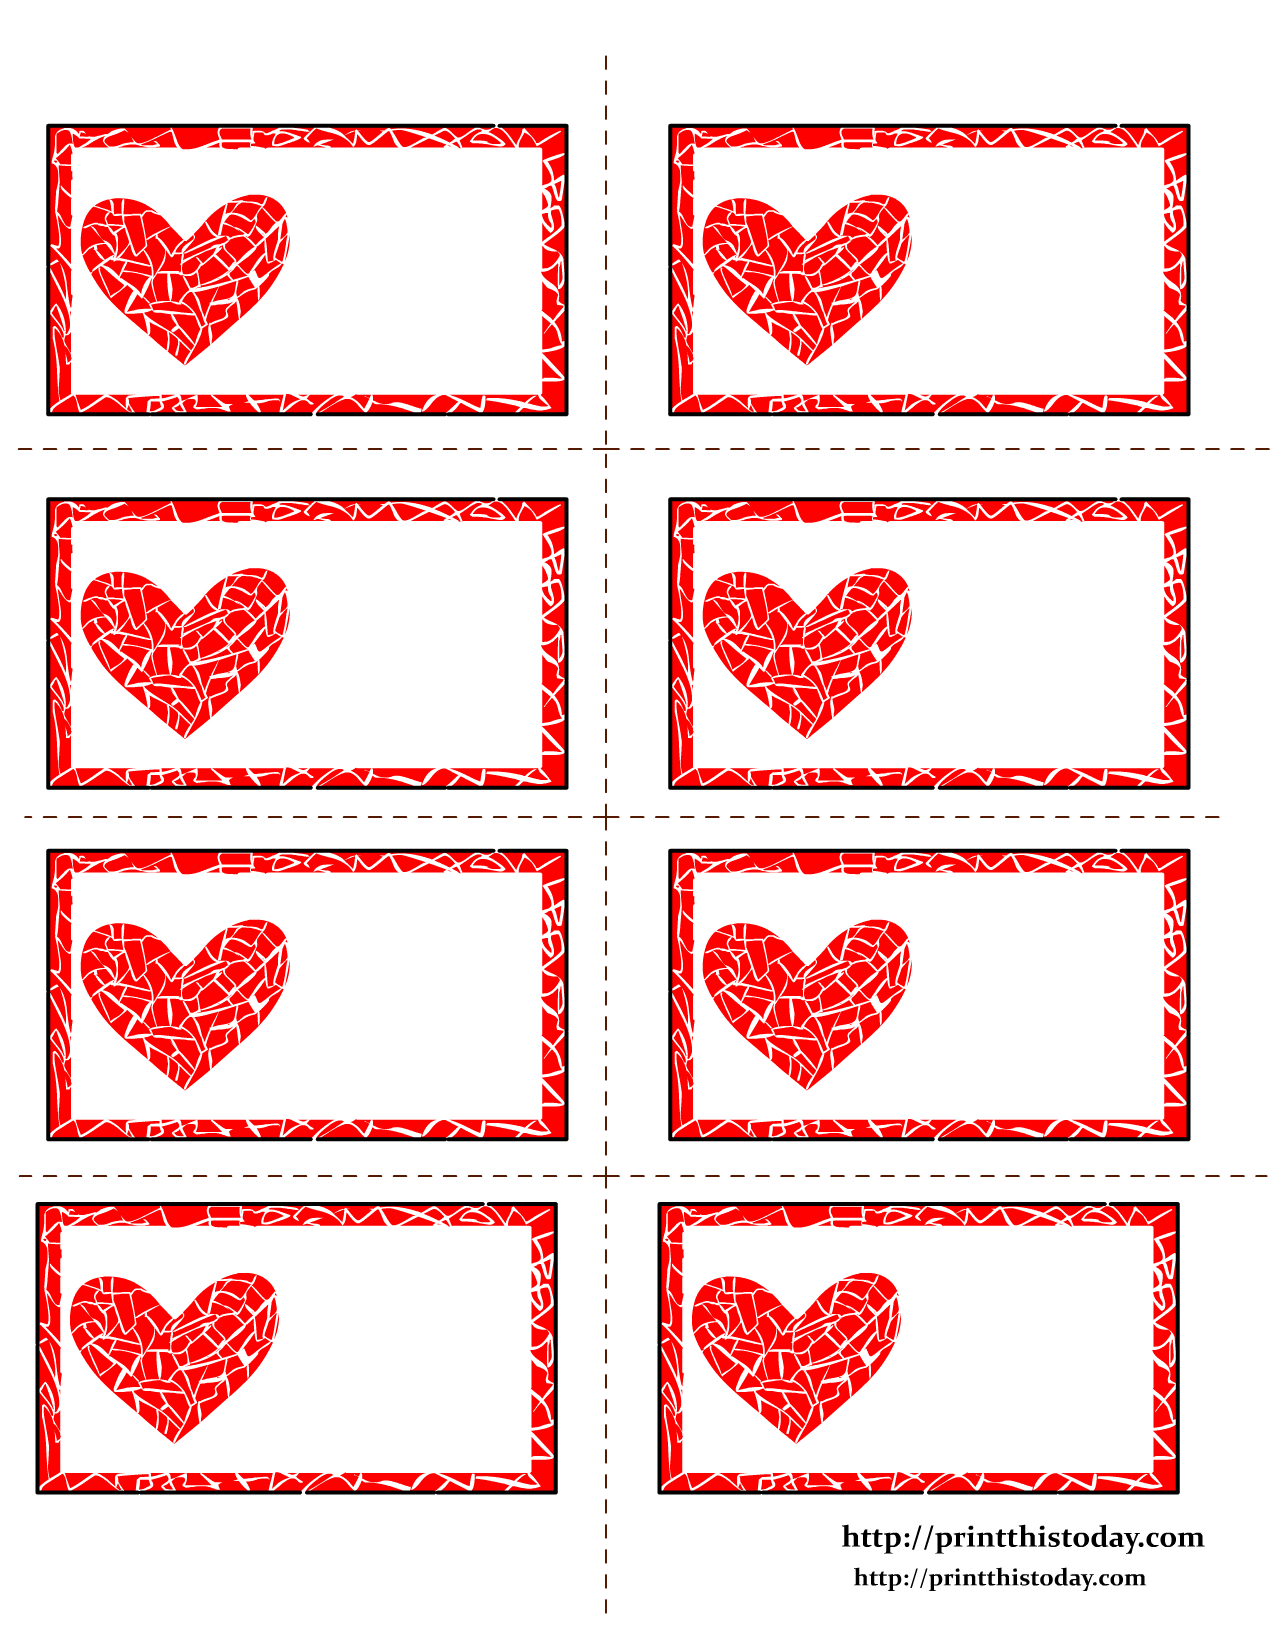 Free Printable Valentines Day Labelsann | Sunday School - Free Printable Heart Labels